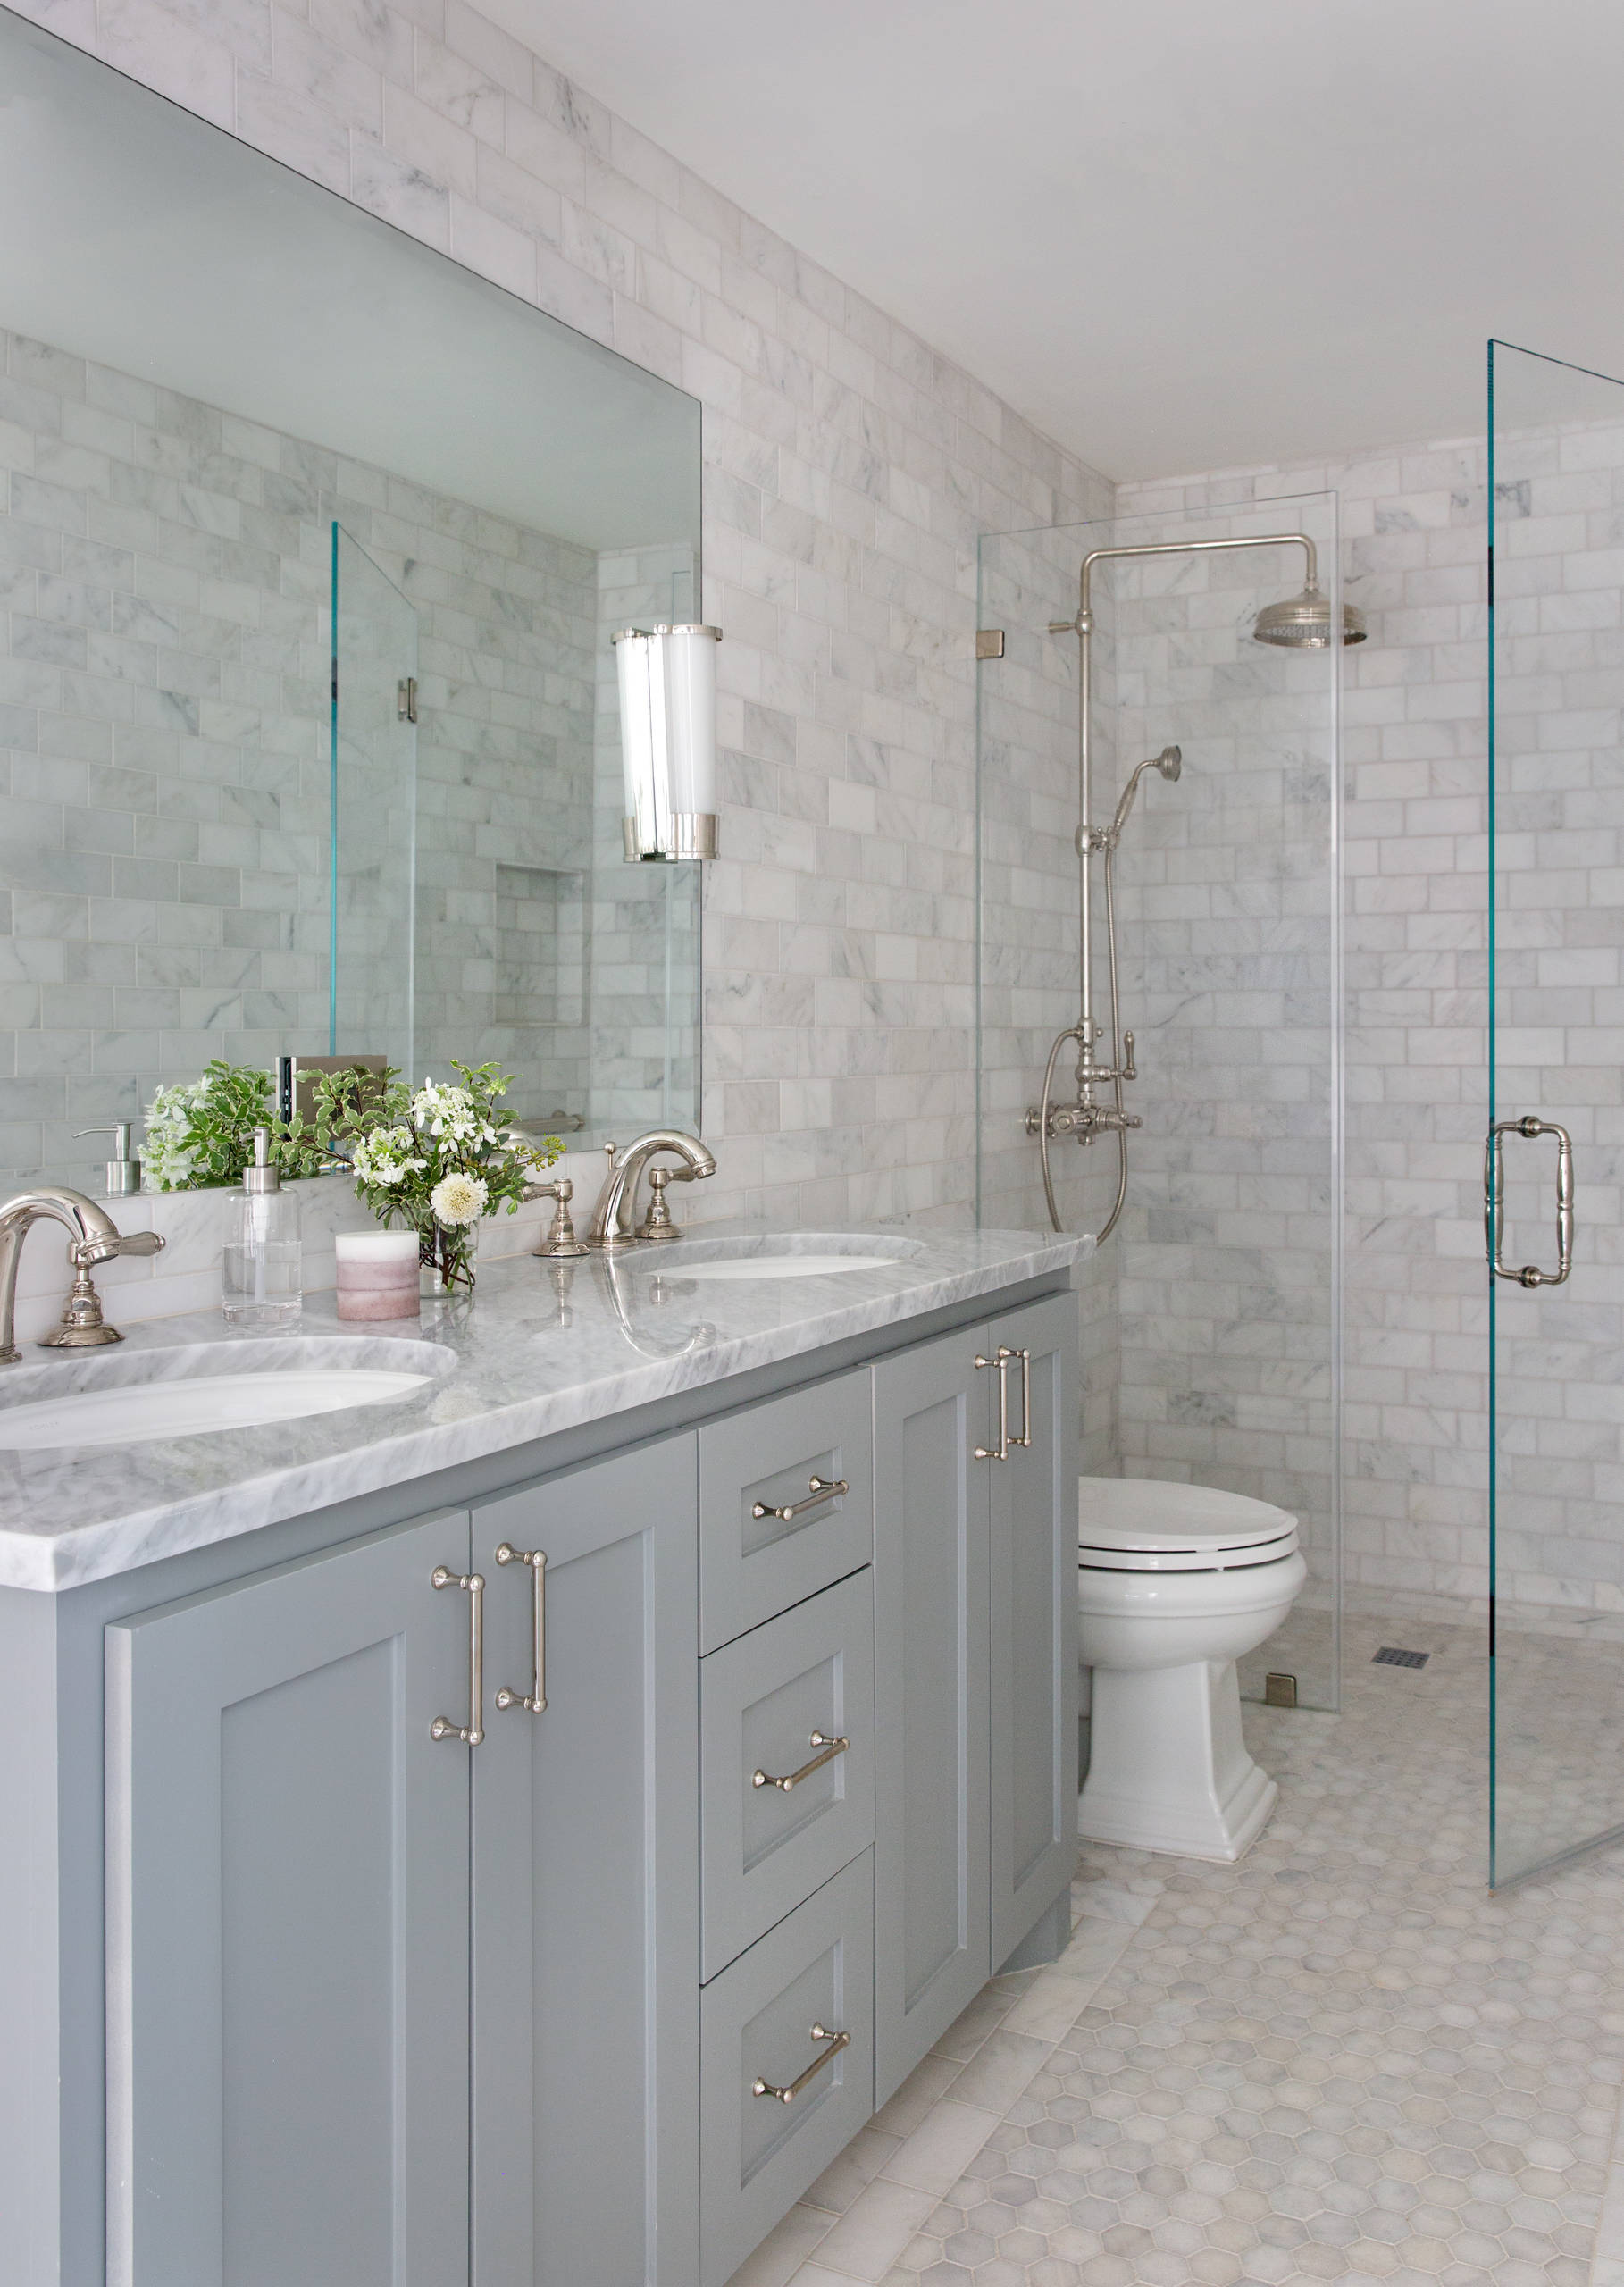 75 Beautiful Small Marble Tile Bathroom Pictures Ideas December 2020 Houzz